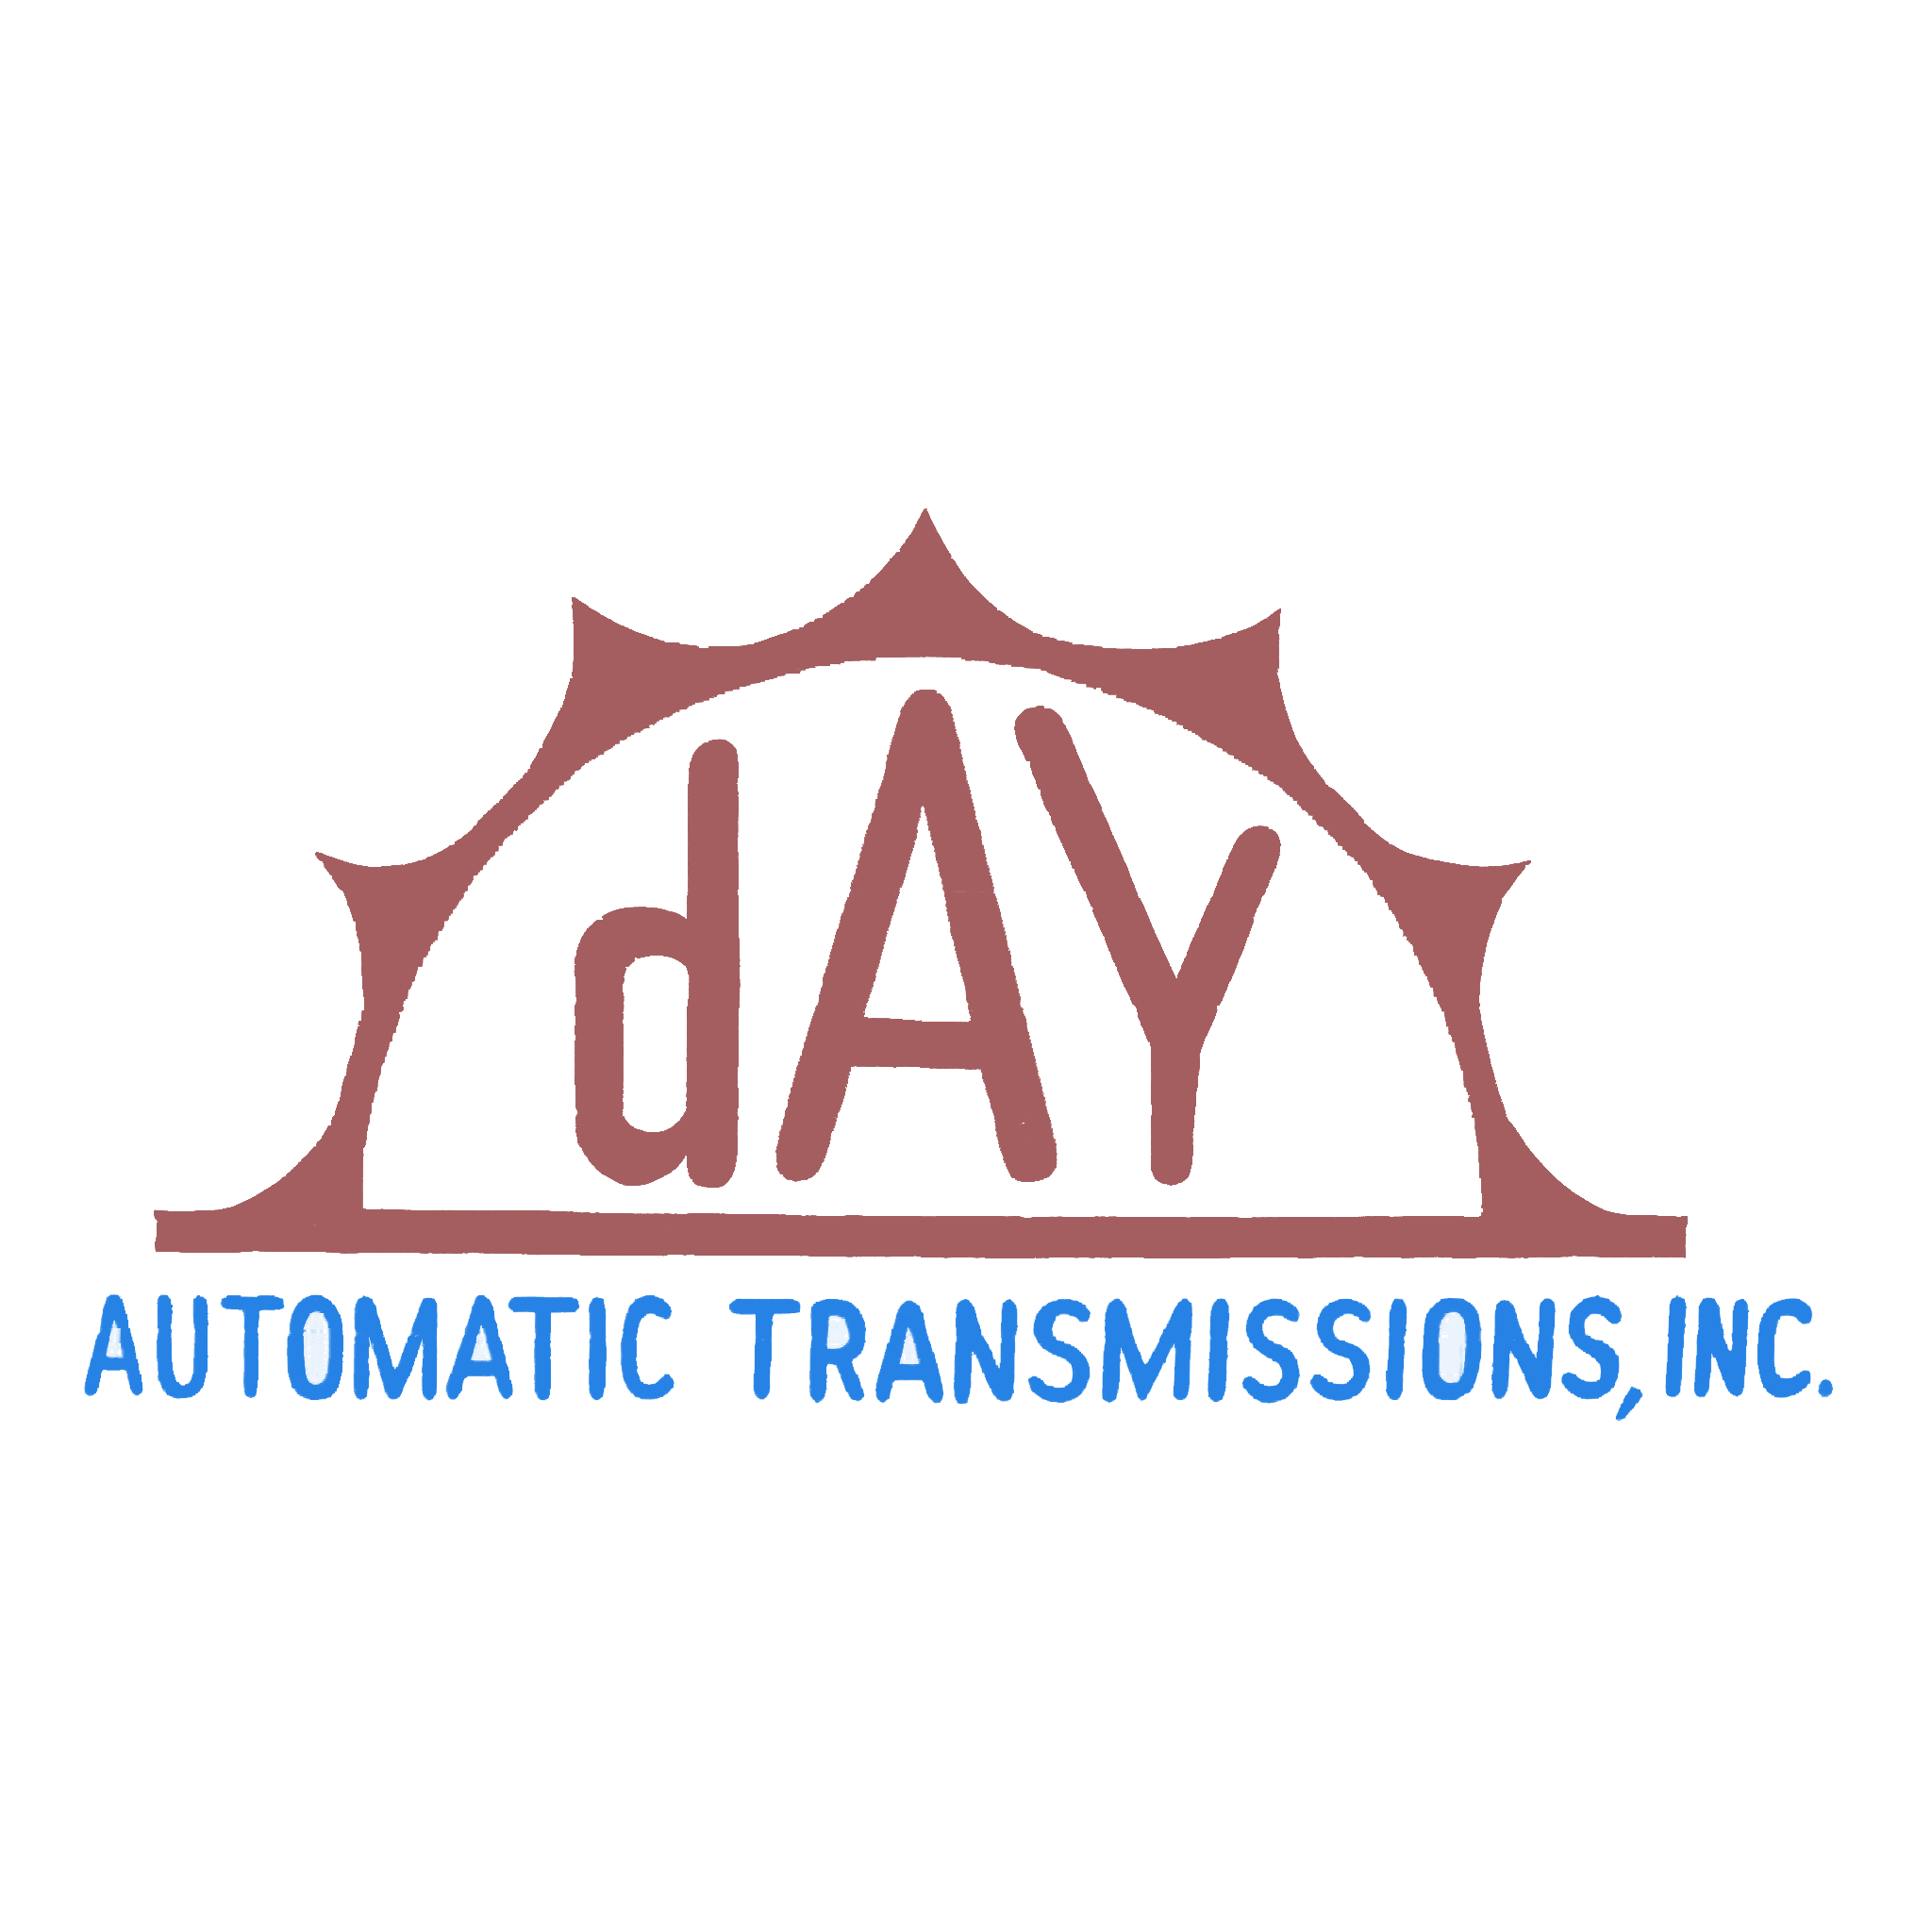 Day Transmissions